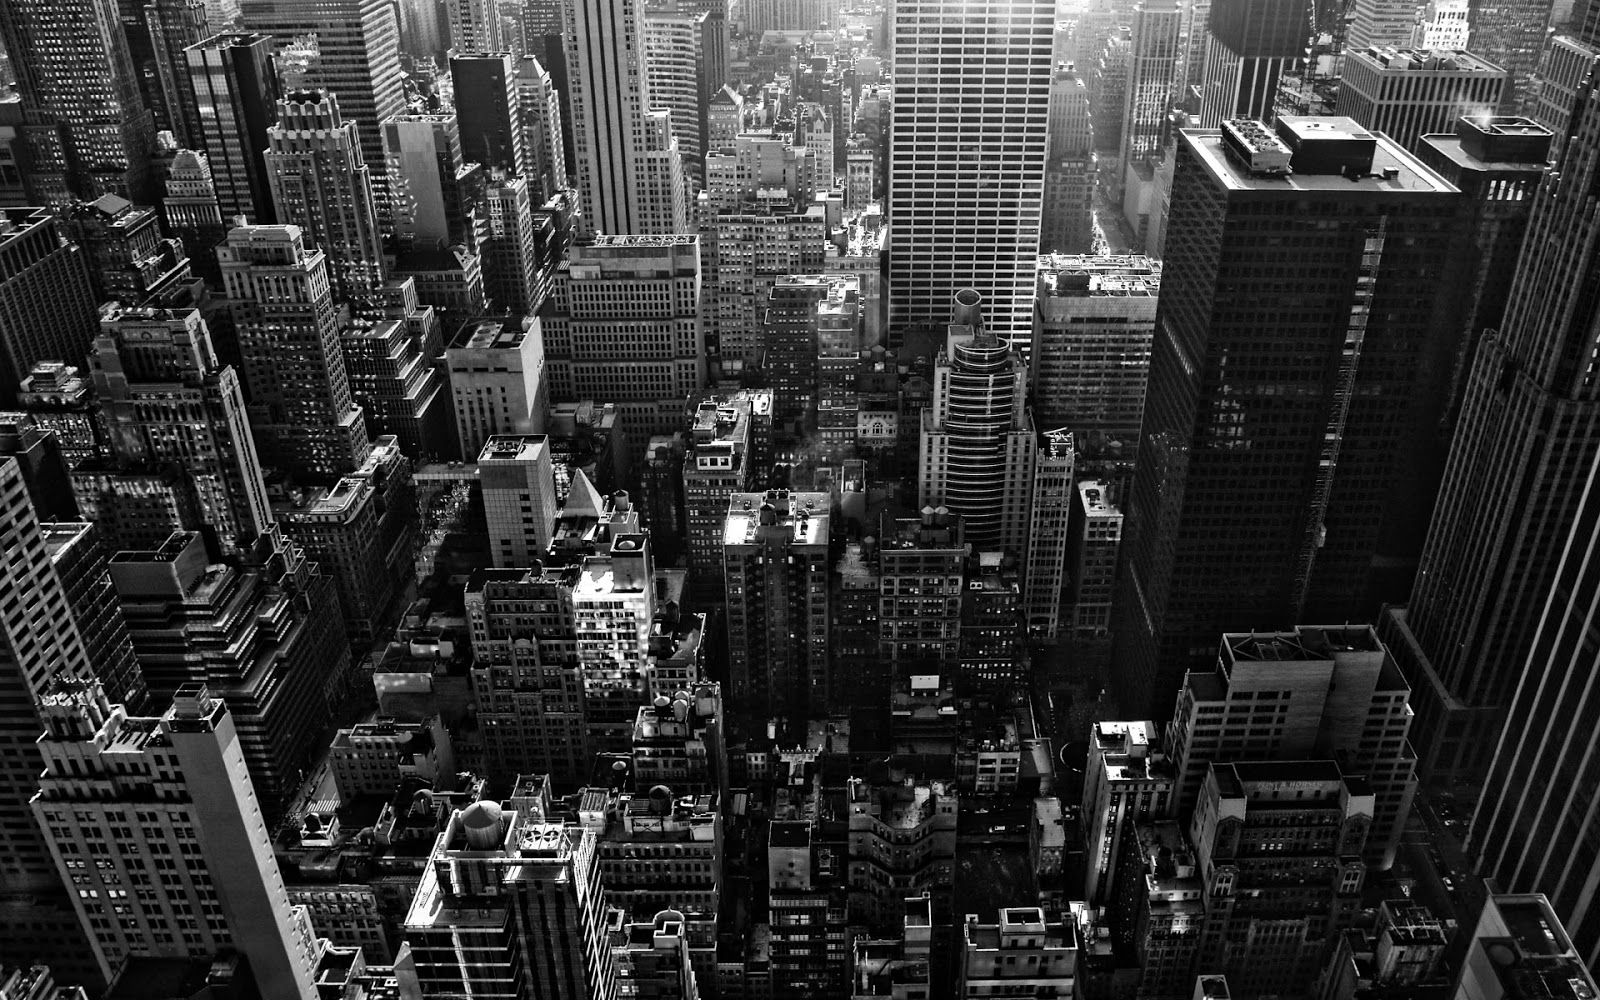 Tokyo Wallpapers Black And White Images New York Wallpaper City Wallpaper Black And White City